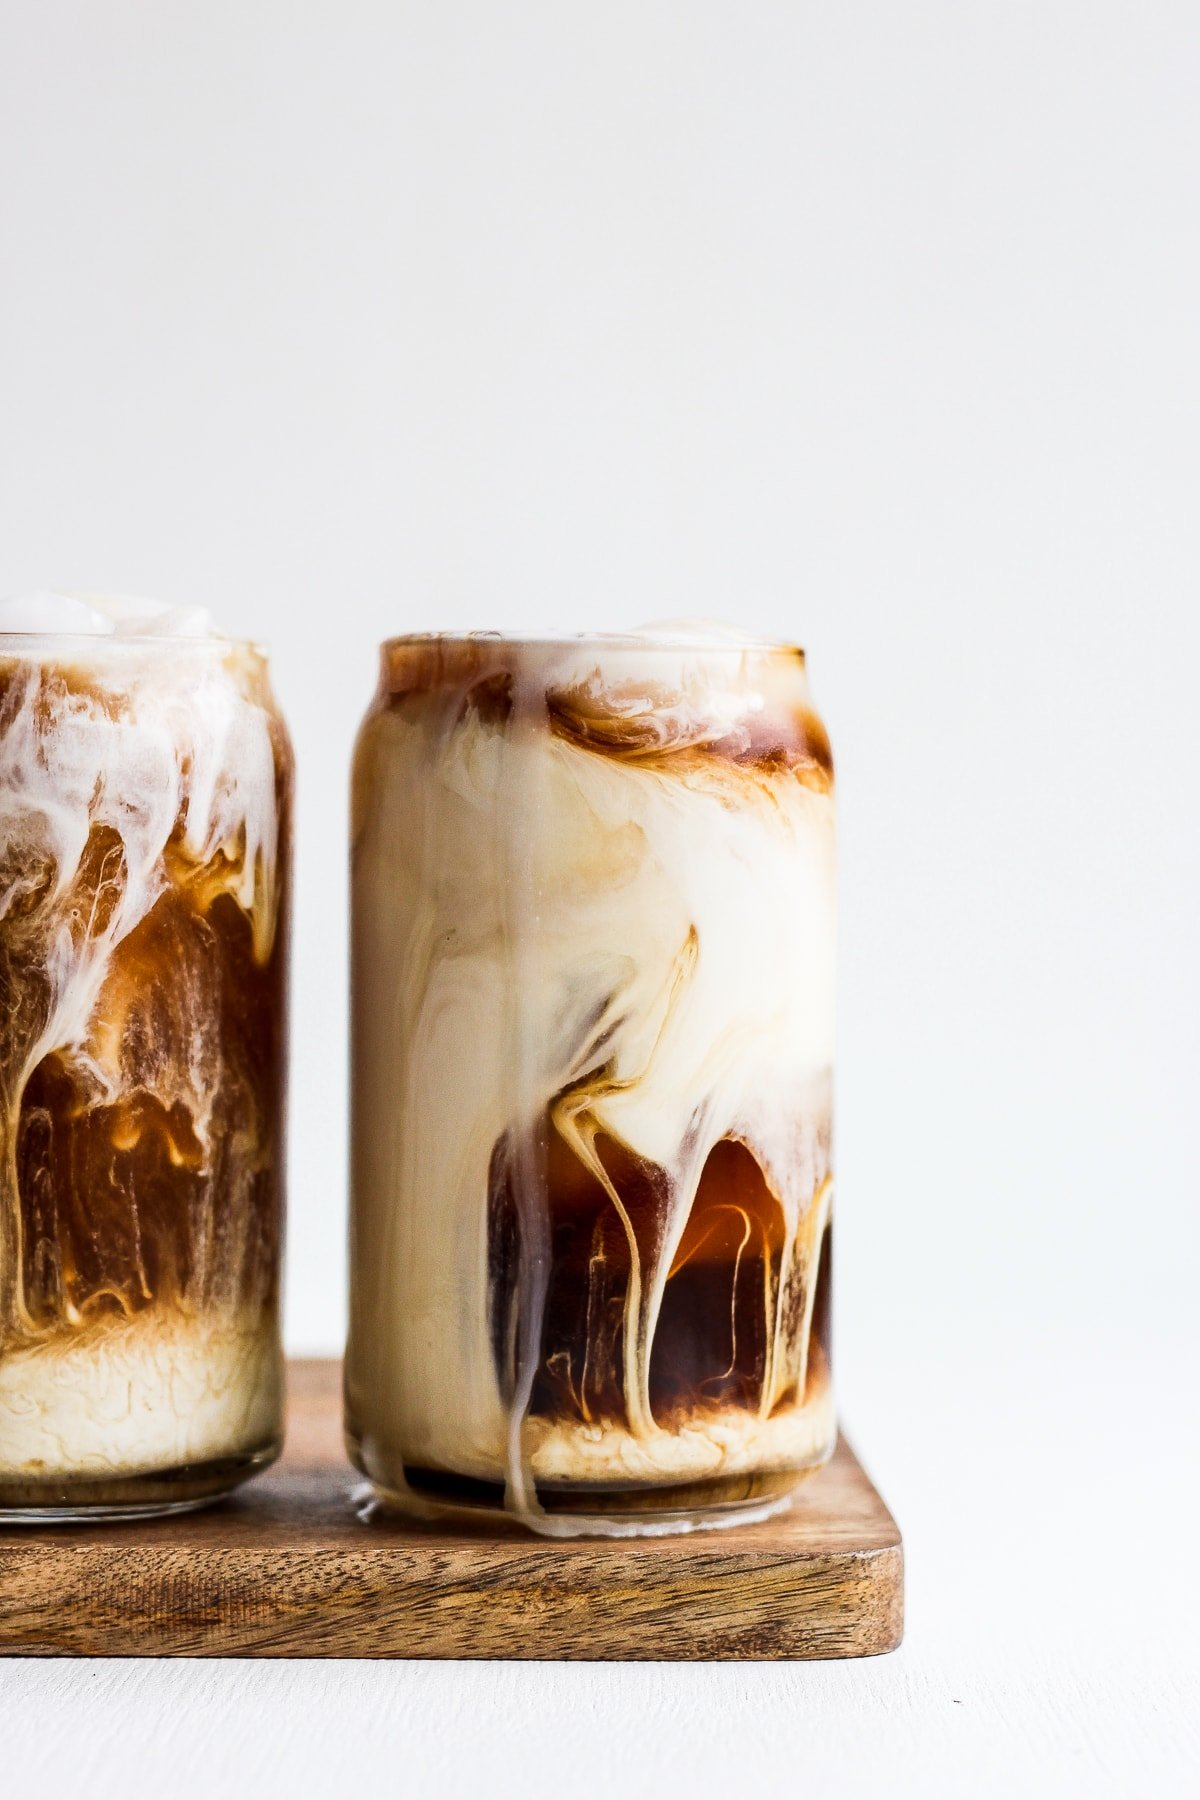 A glass of cold brew coffee with creamer swirling inside.